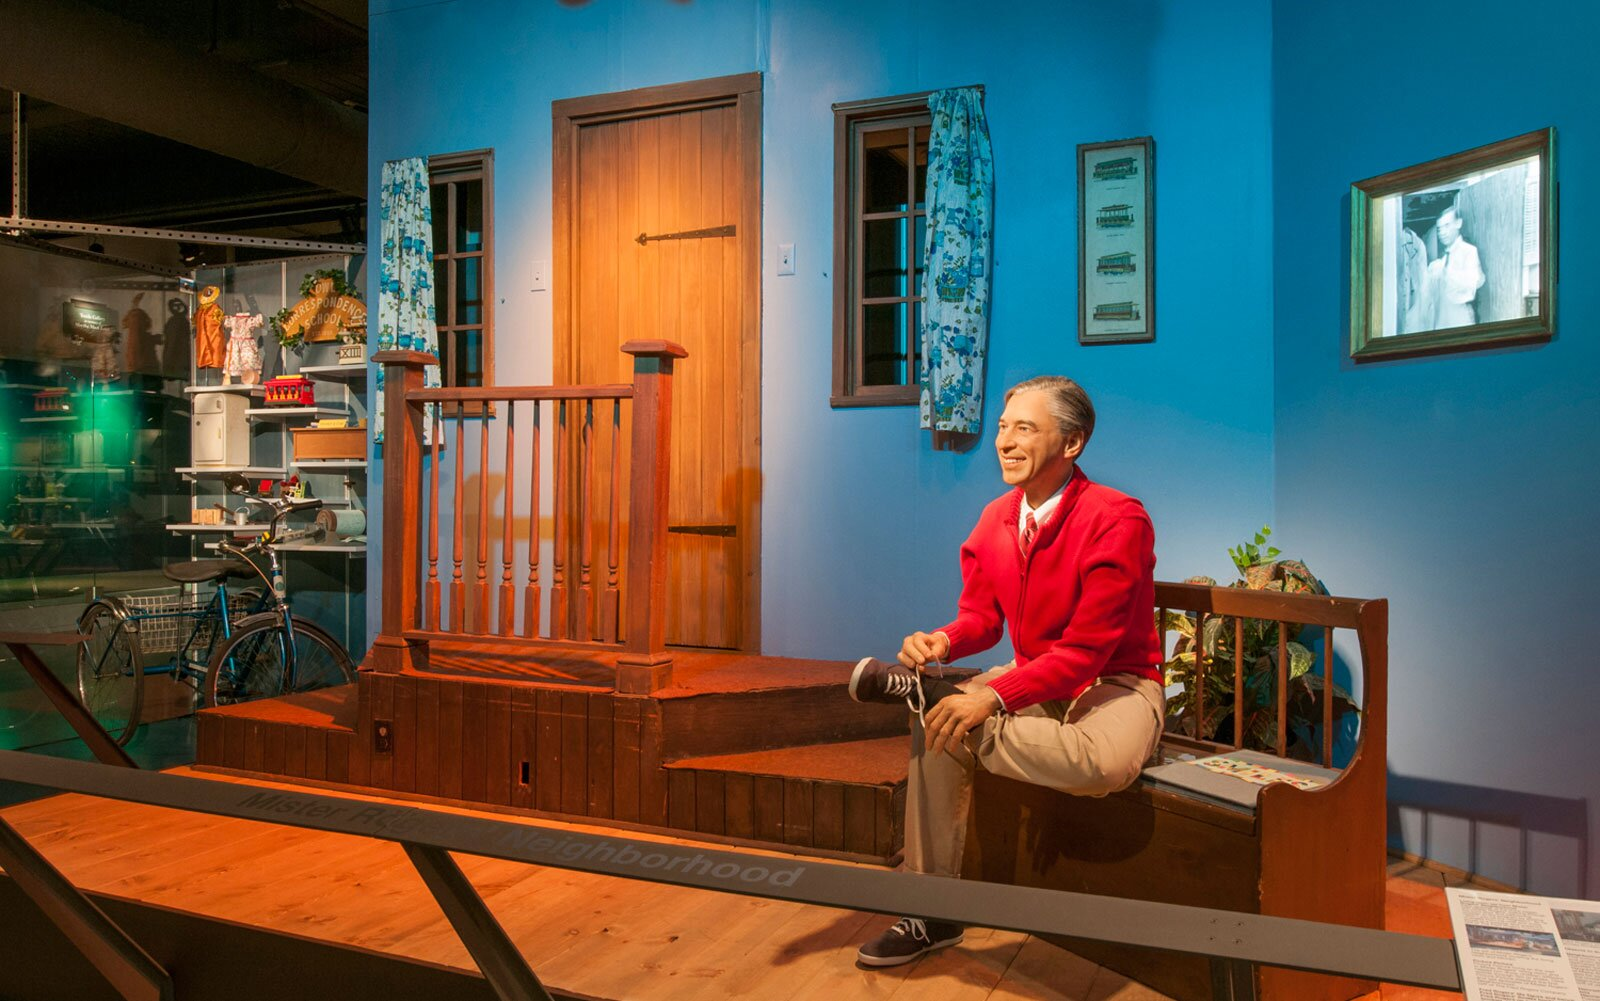 The Mister Rogers Trail In Pennsylvania Takes You To The Sights That Inspired His Iconic Show Travel Leisure